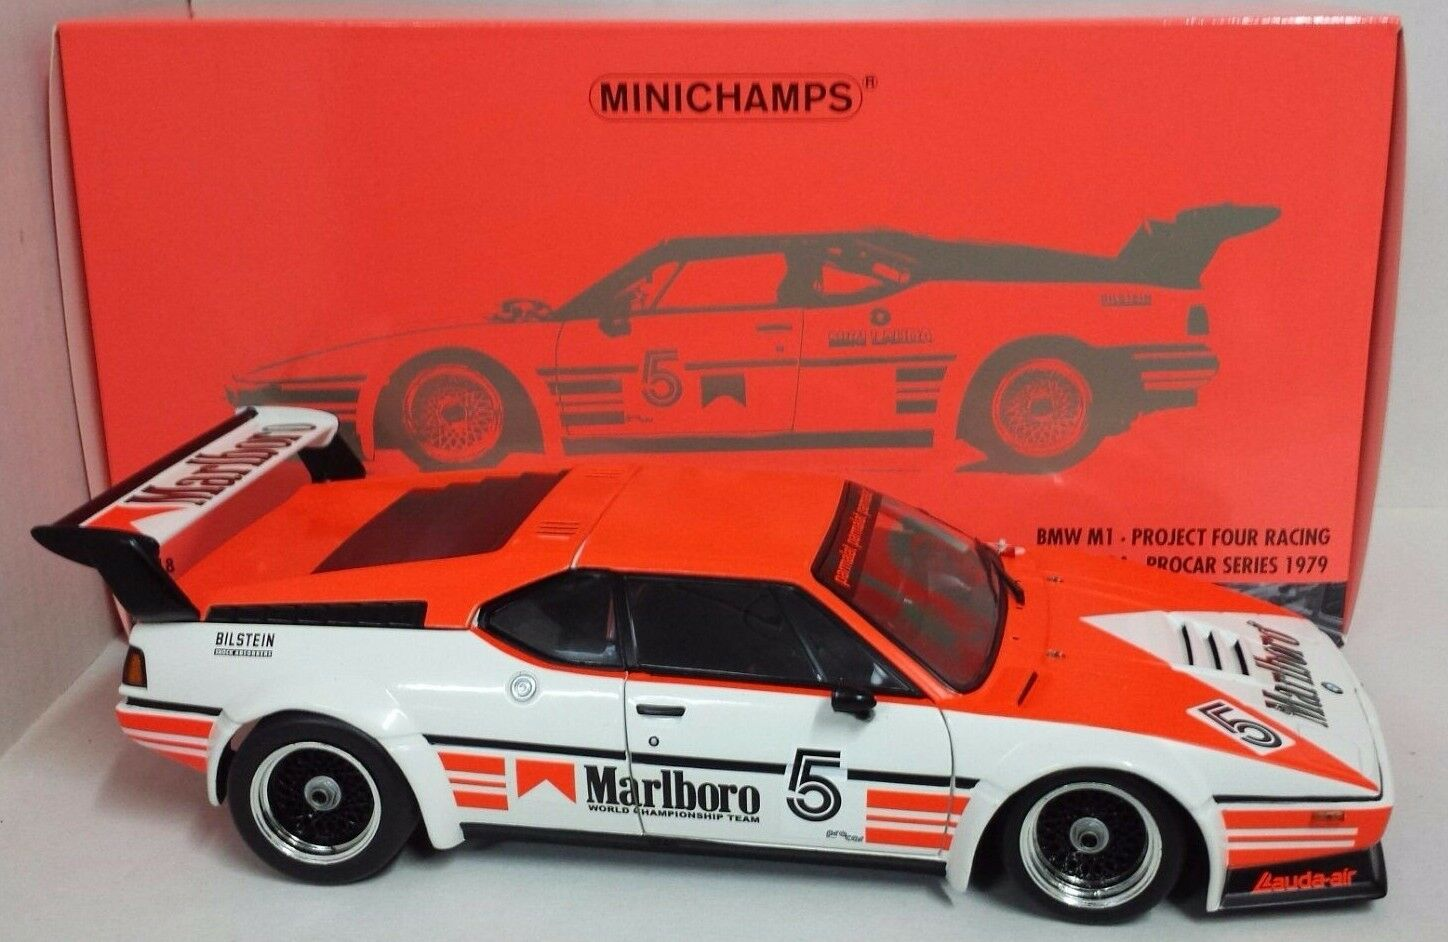 Minichamps 1/18 Niki Lauda BMW M1 Winner PROCAR Series 1979 \